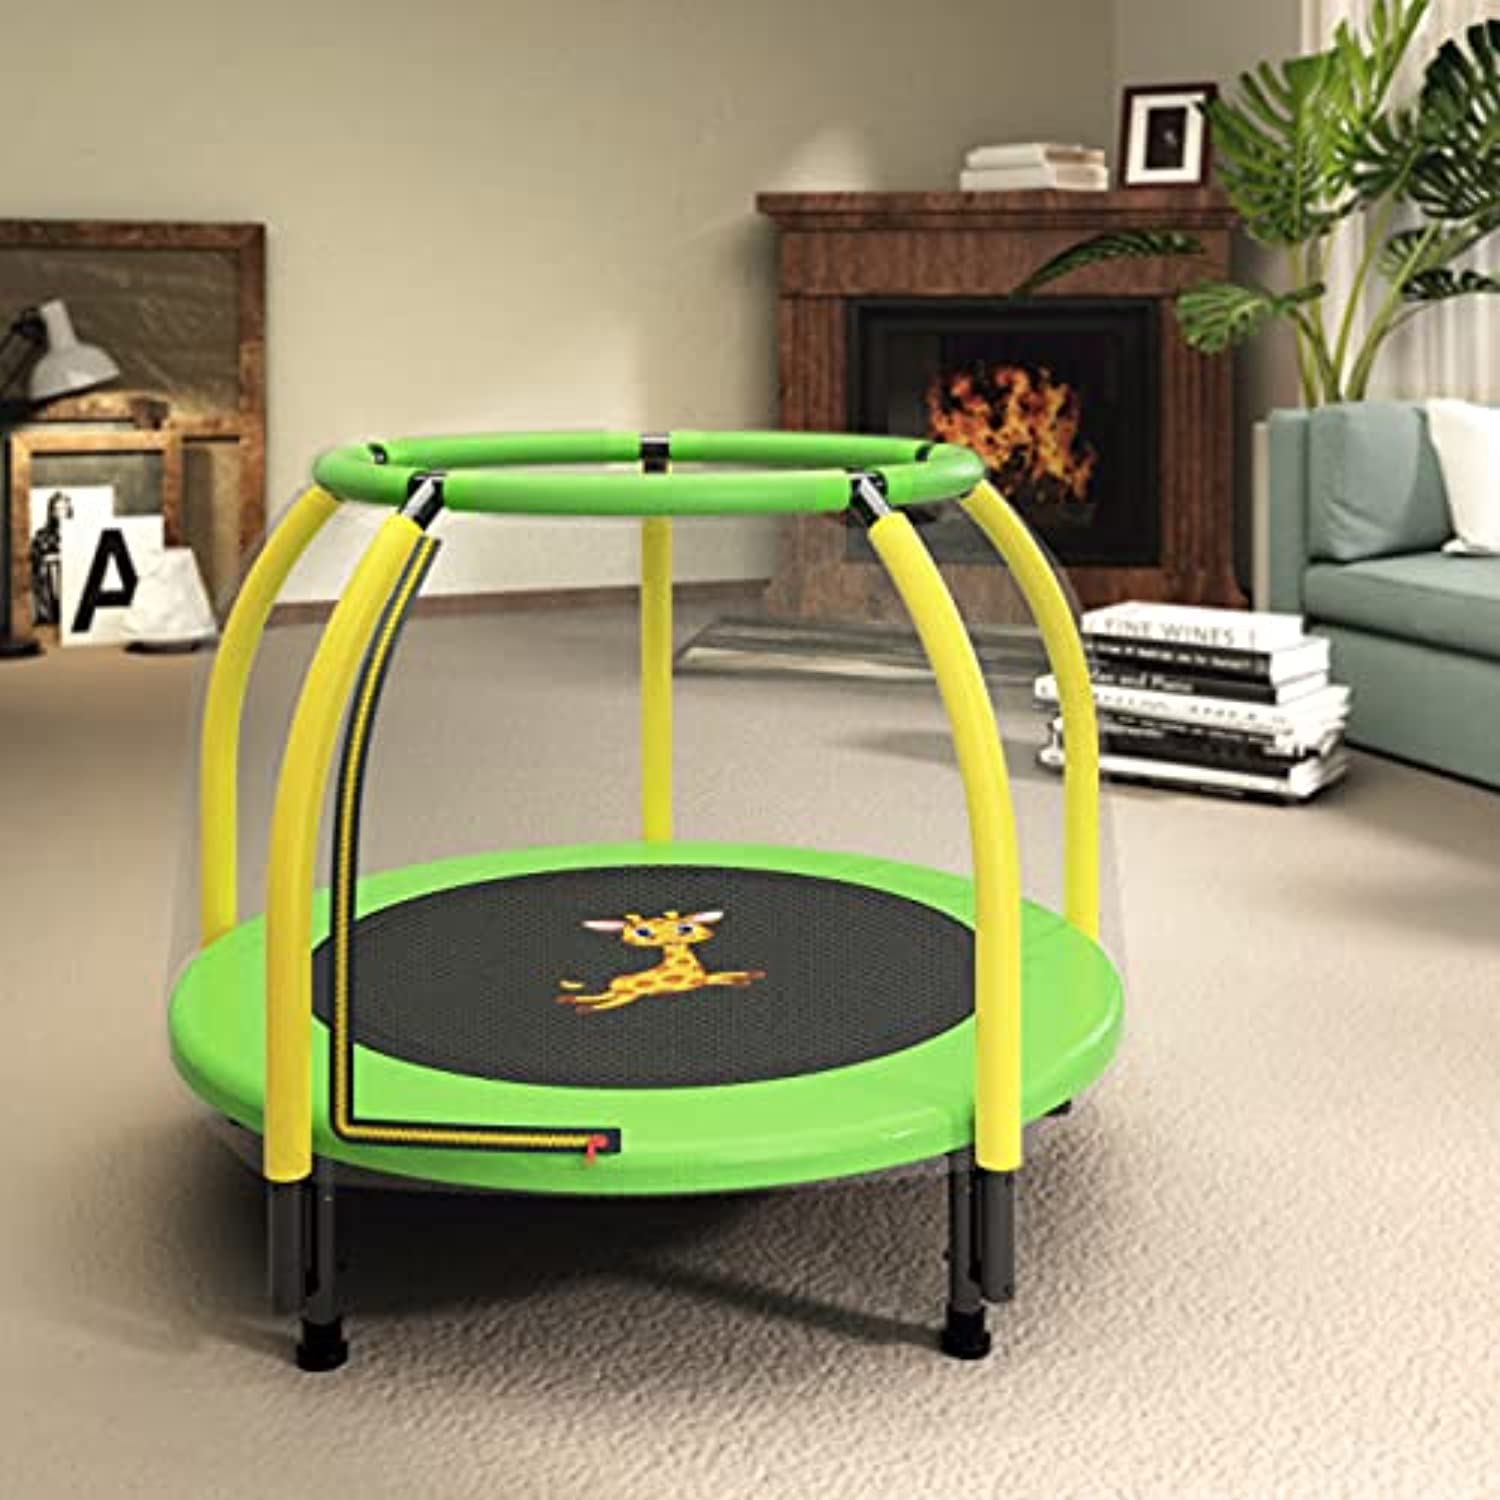 Gardenature 4 FT Kids Trampoline with Safety Enclosure Net, Spring Pad, Zipper, Mini Trampoline for Kids Indoor/Outdoor,Yellow and Green-4 FT